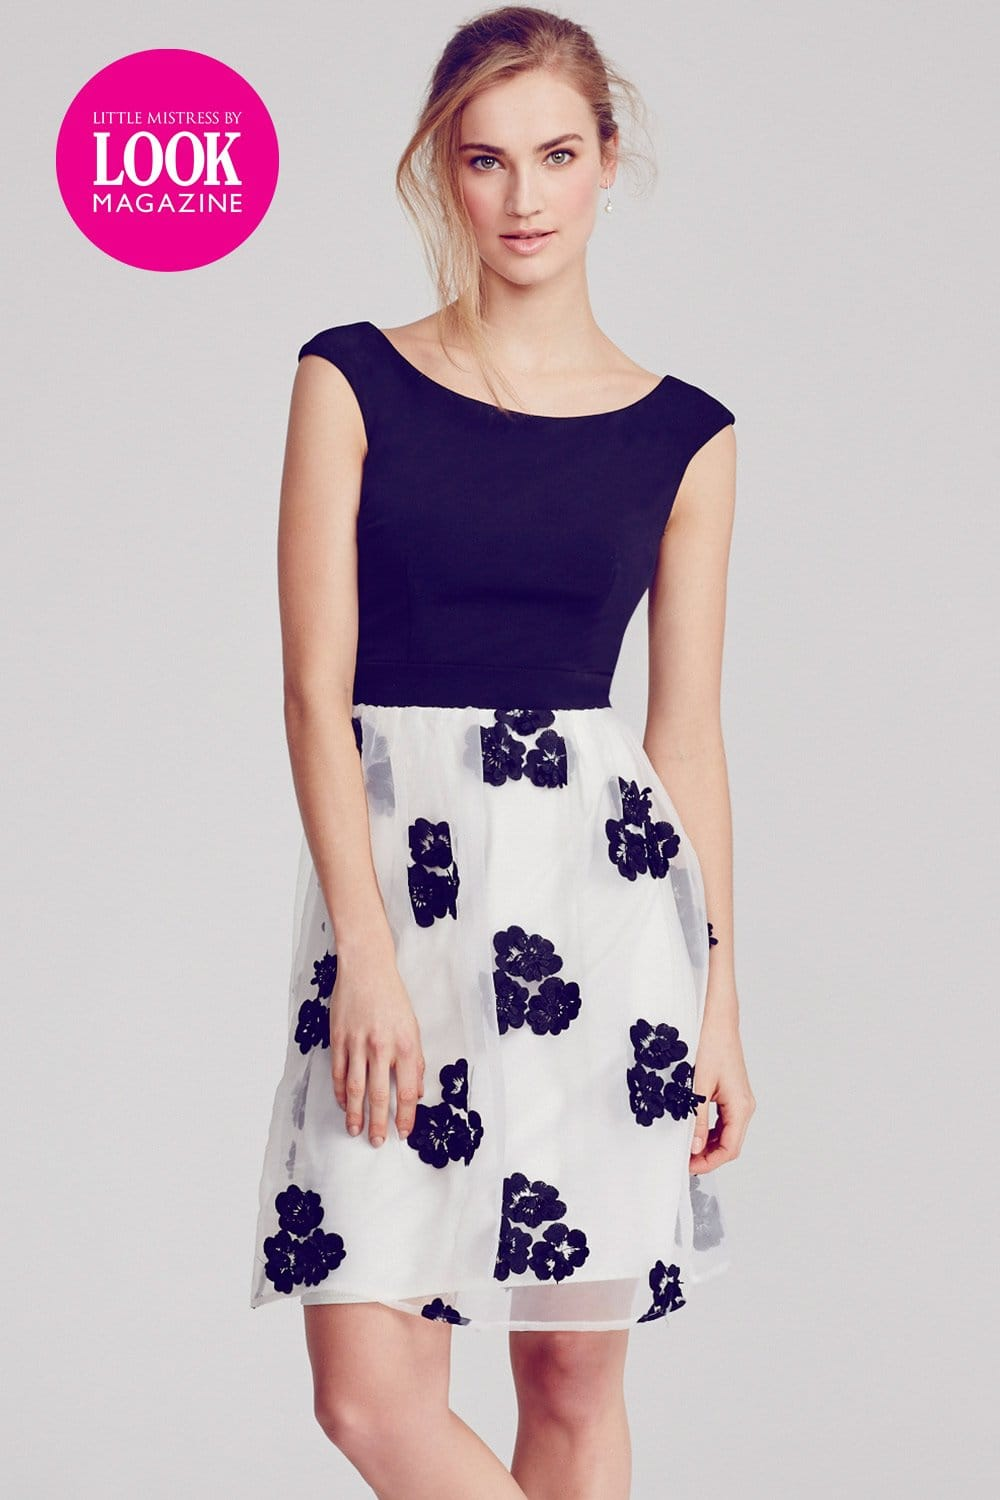 Outlet Little Mistress By Look Magazine Floral Mesh Fit